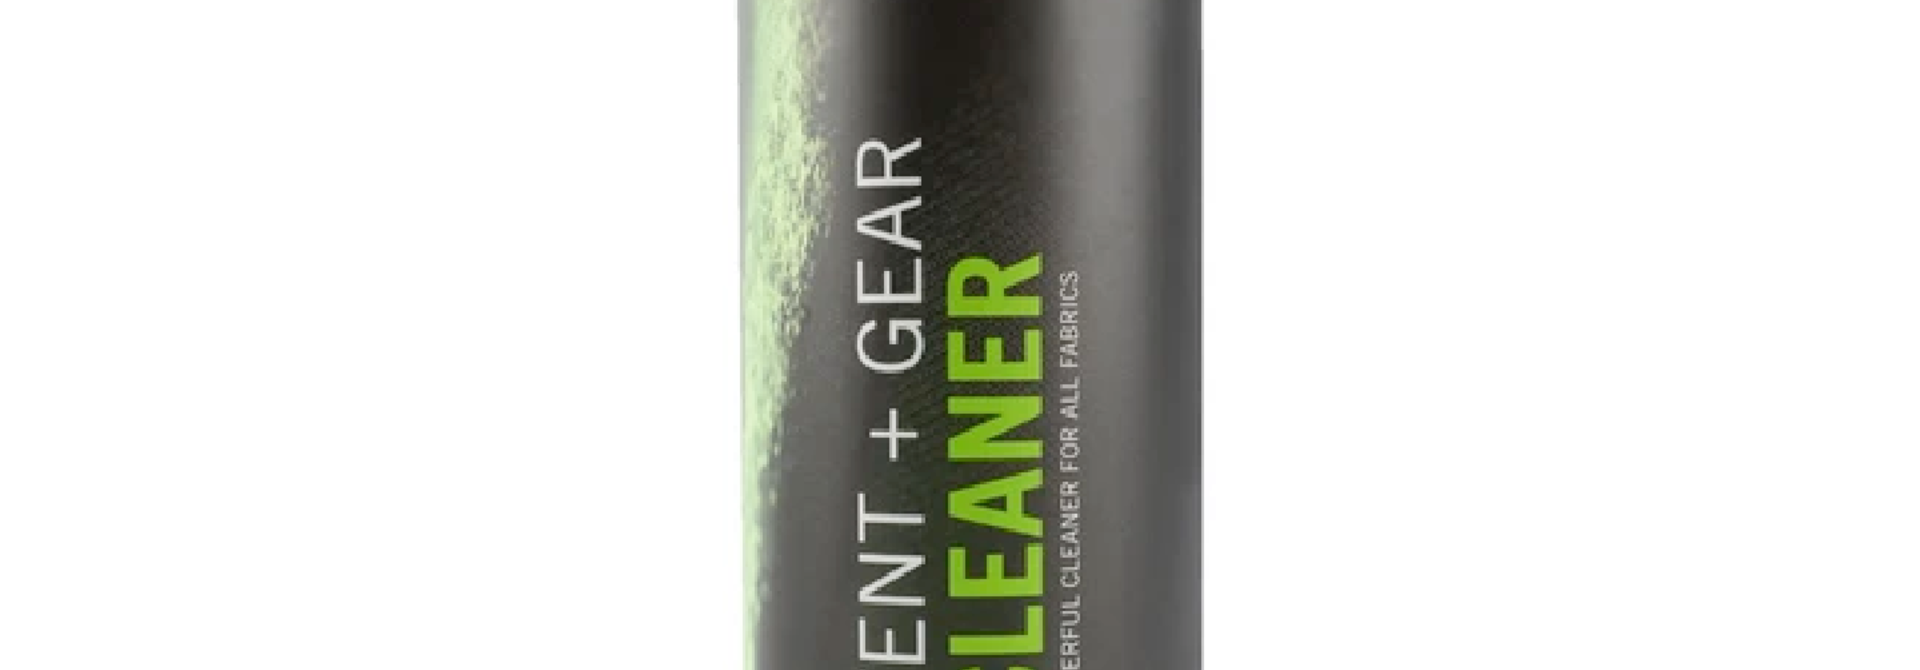 Tent and Gear Cleaner